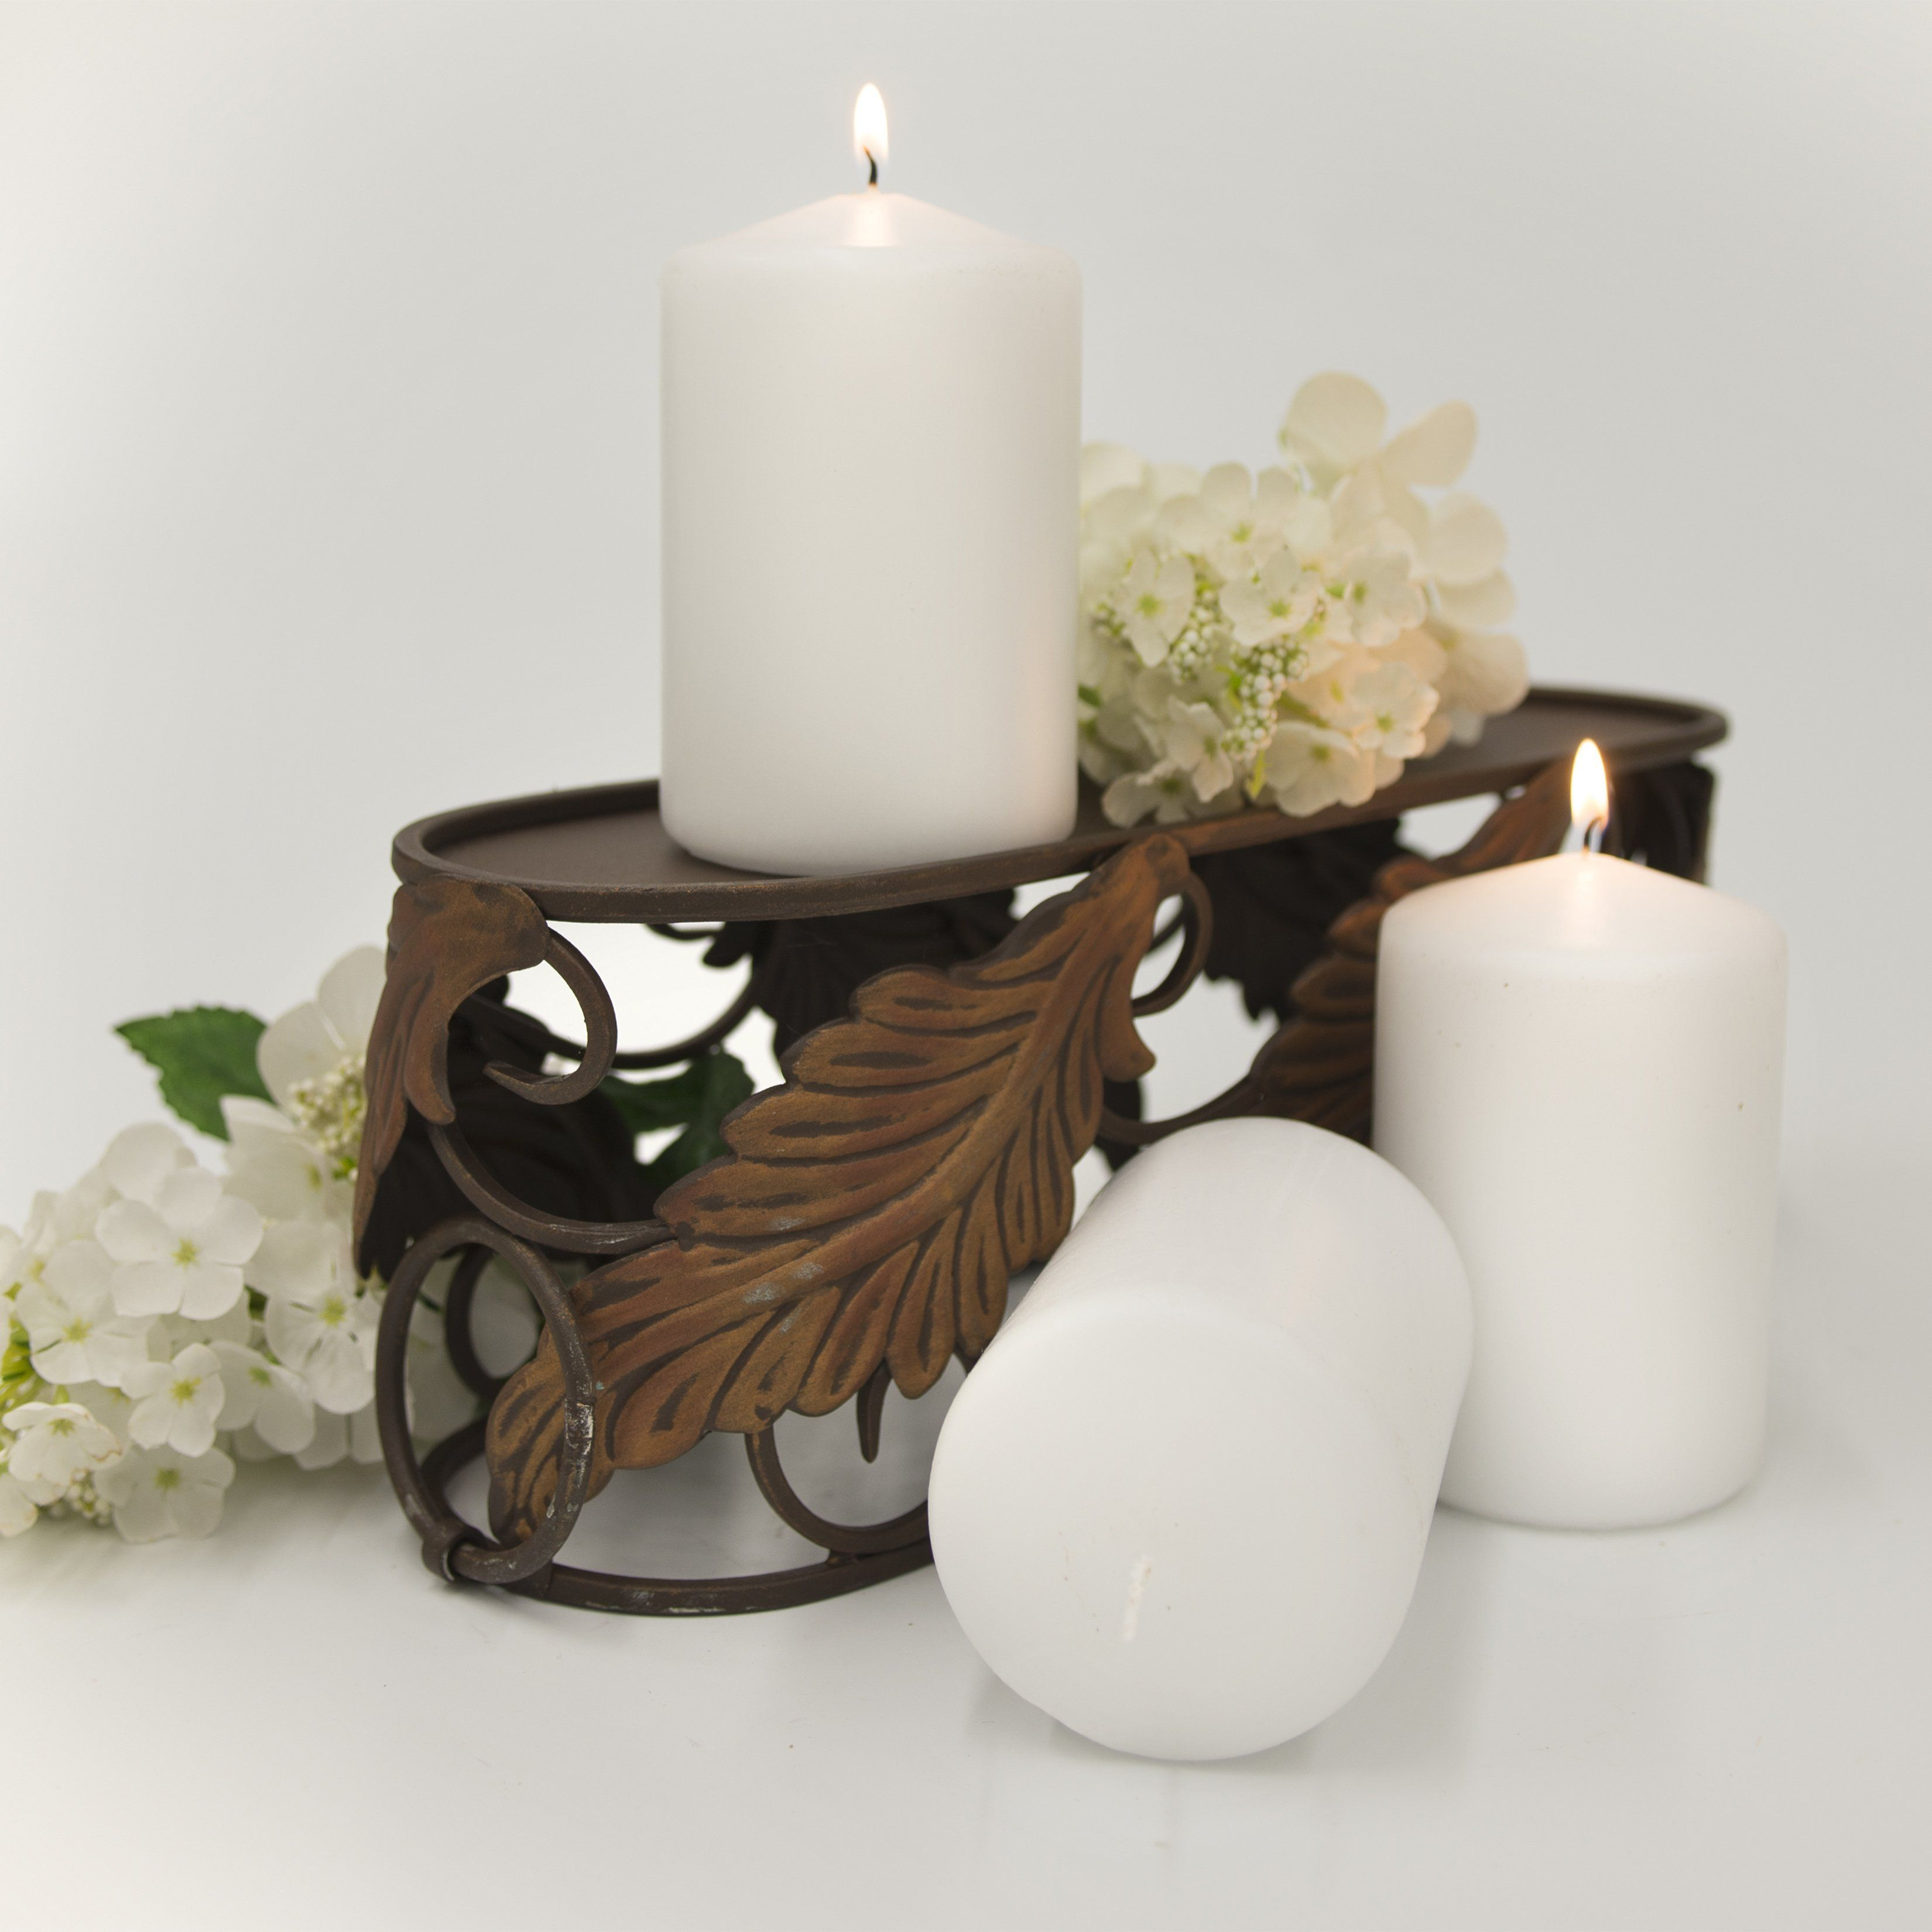 3x5 Unscented Pearl Pillar Candle Candles Candlemart.com $ 3.29